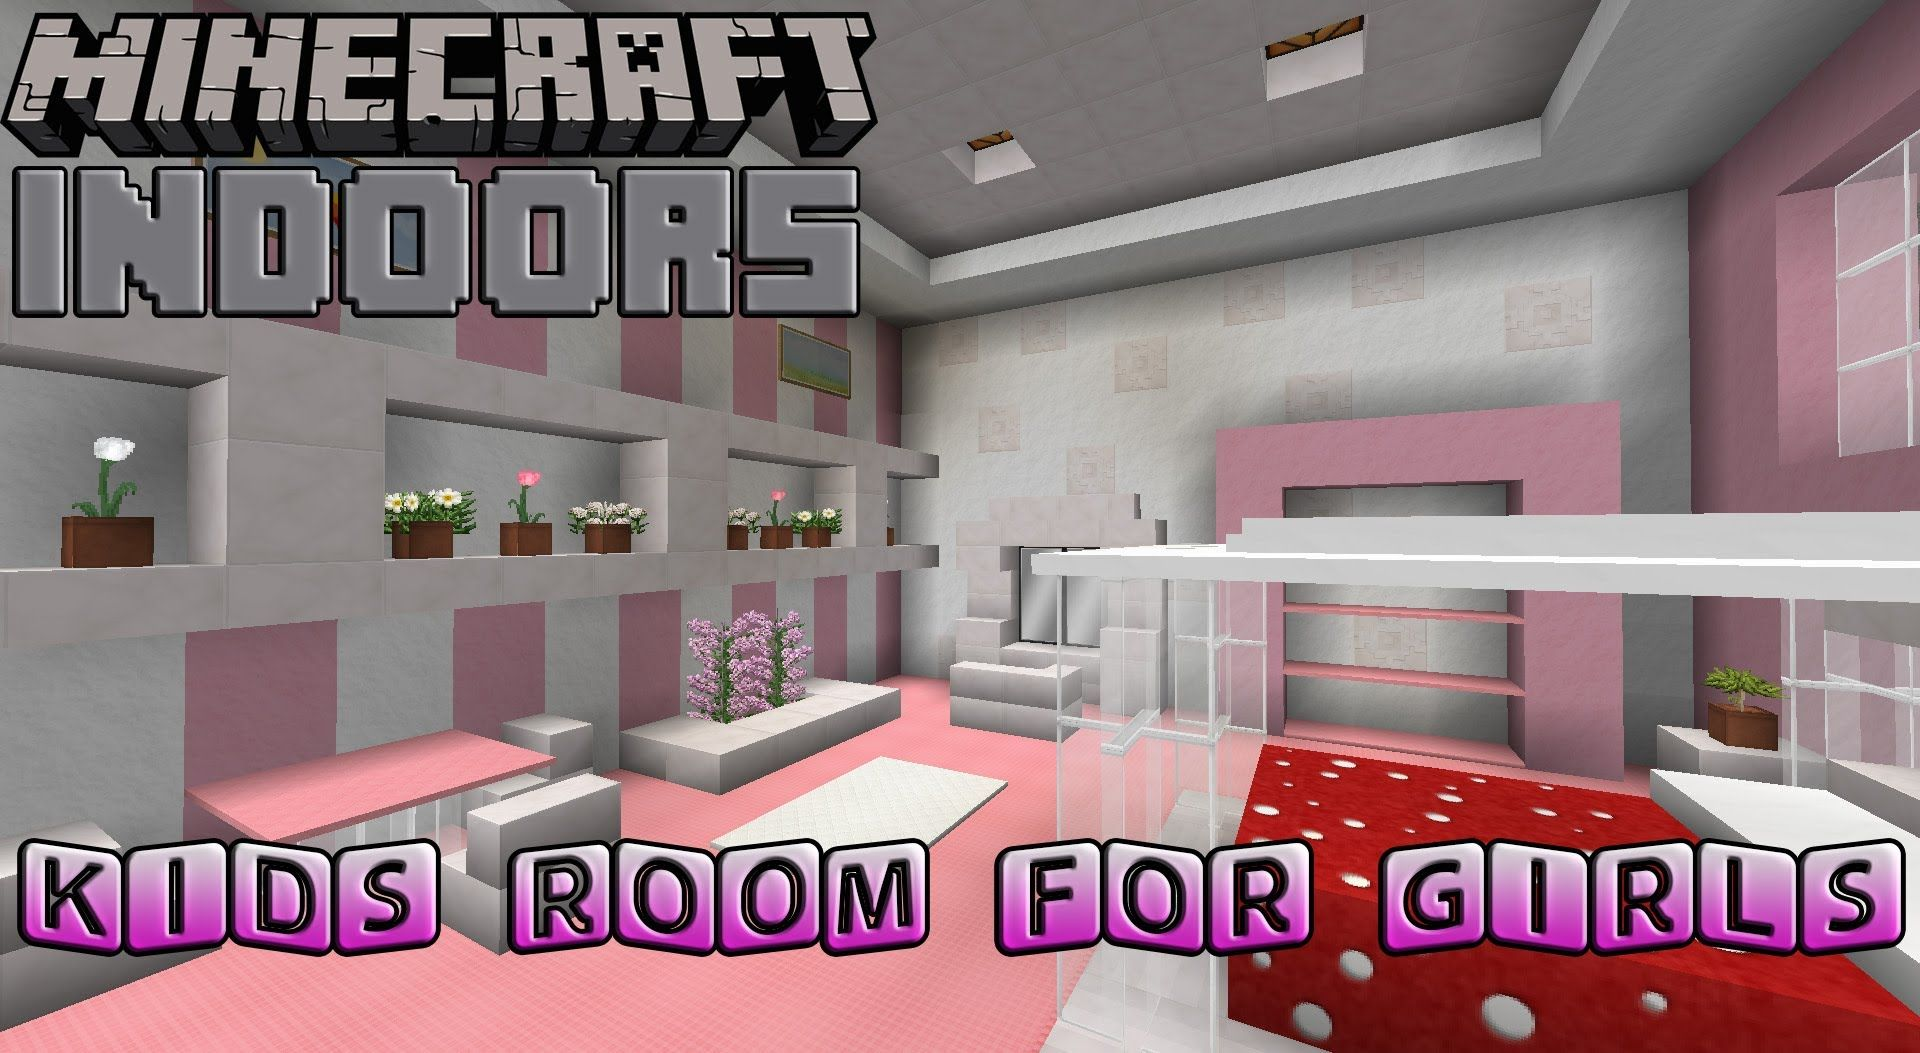 Check This Great Minecraft Video Out Sweet Looking Kids Room For Girls